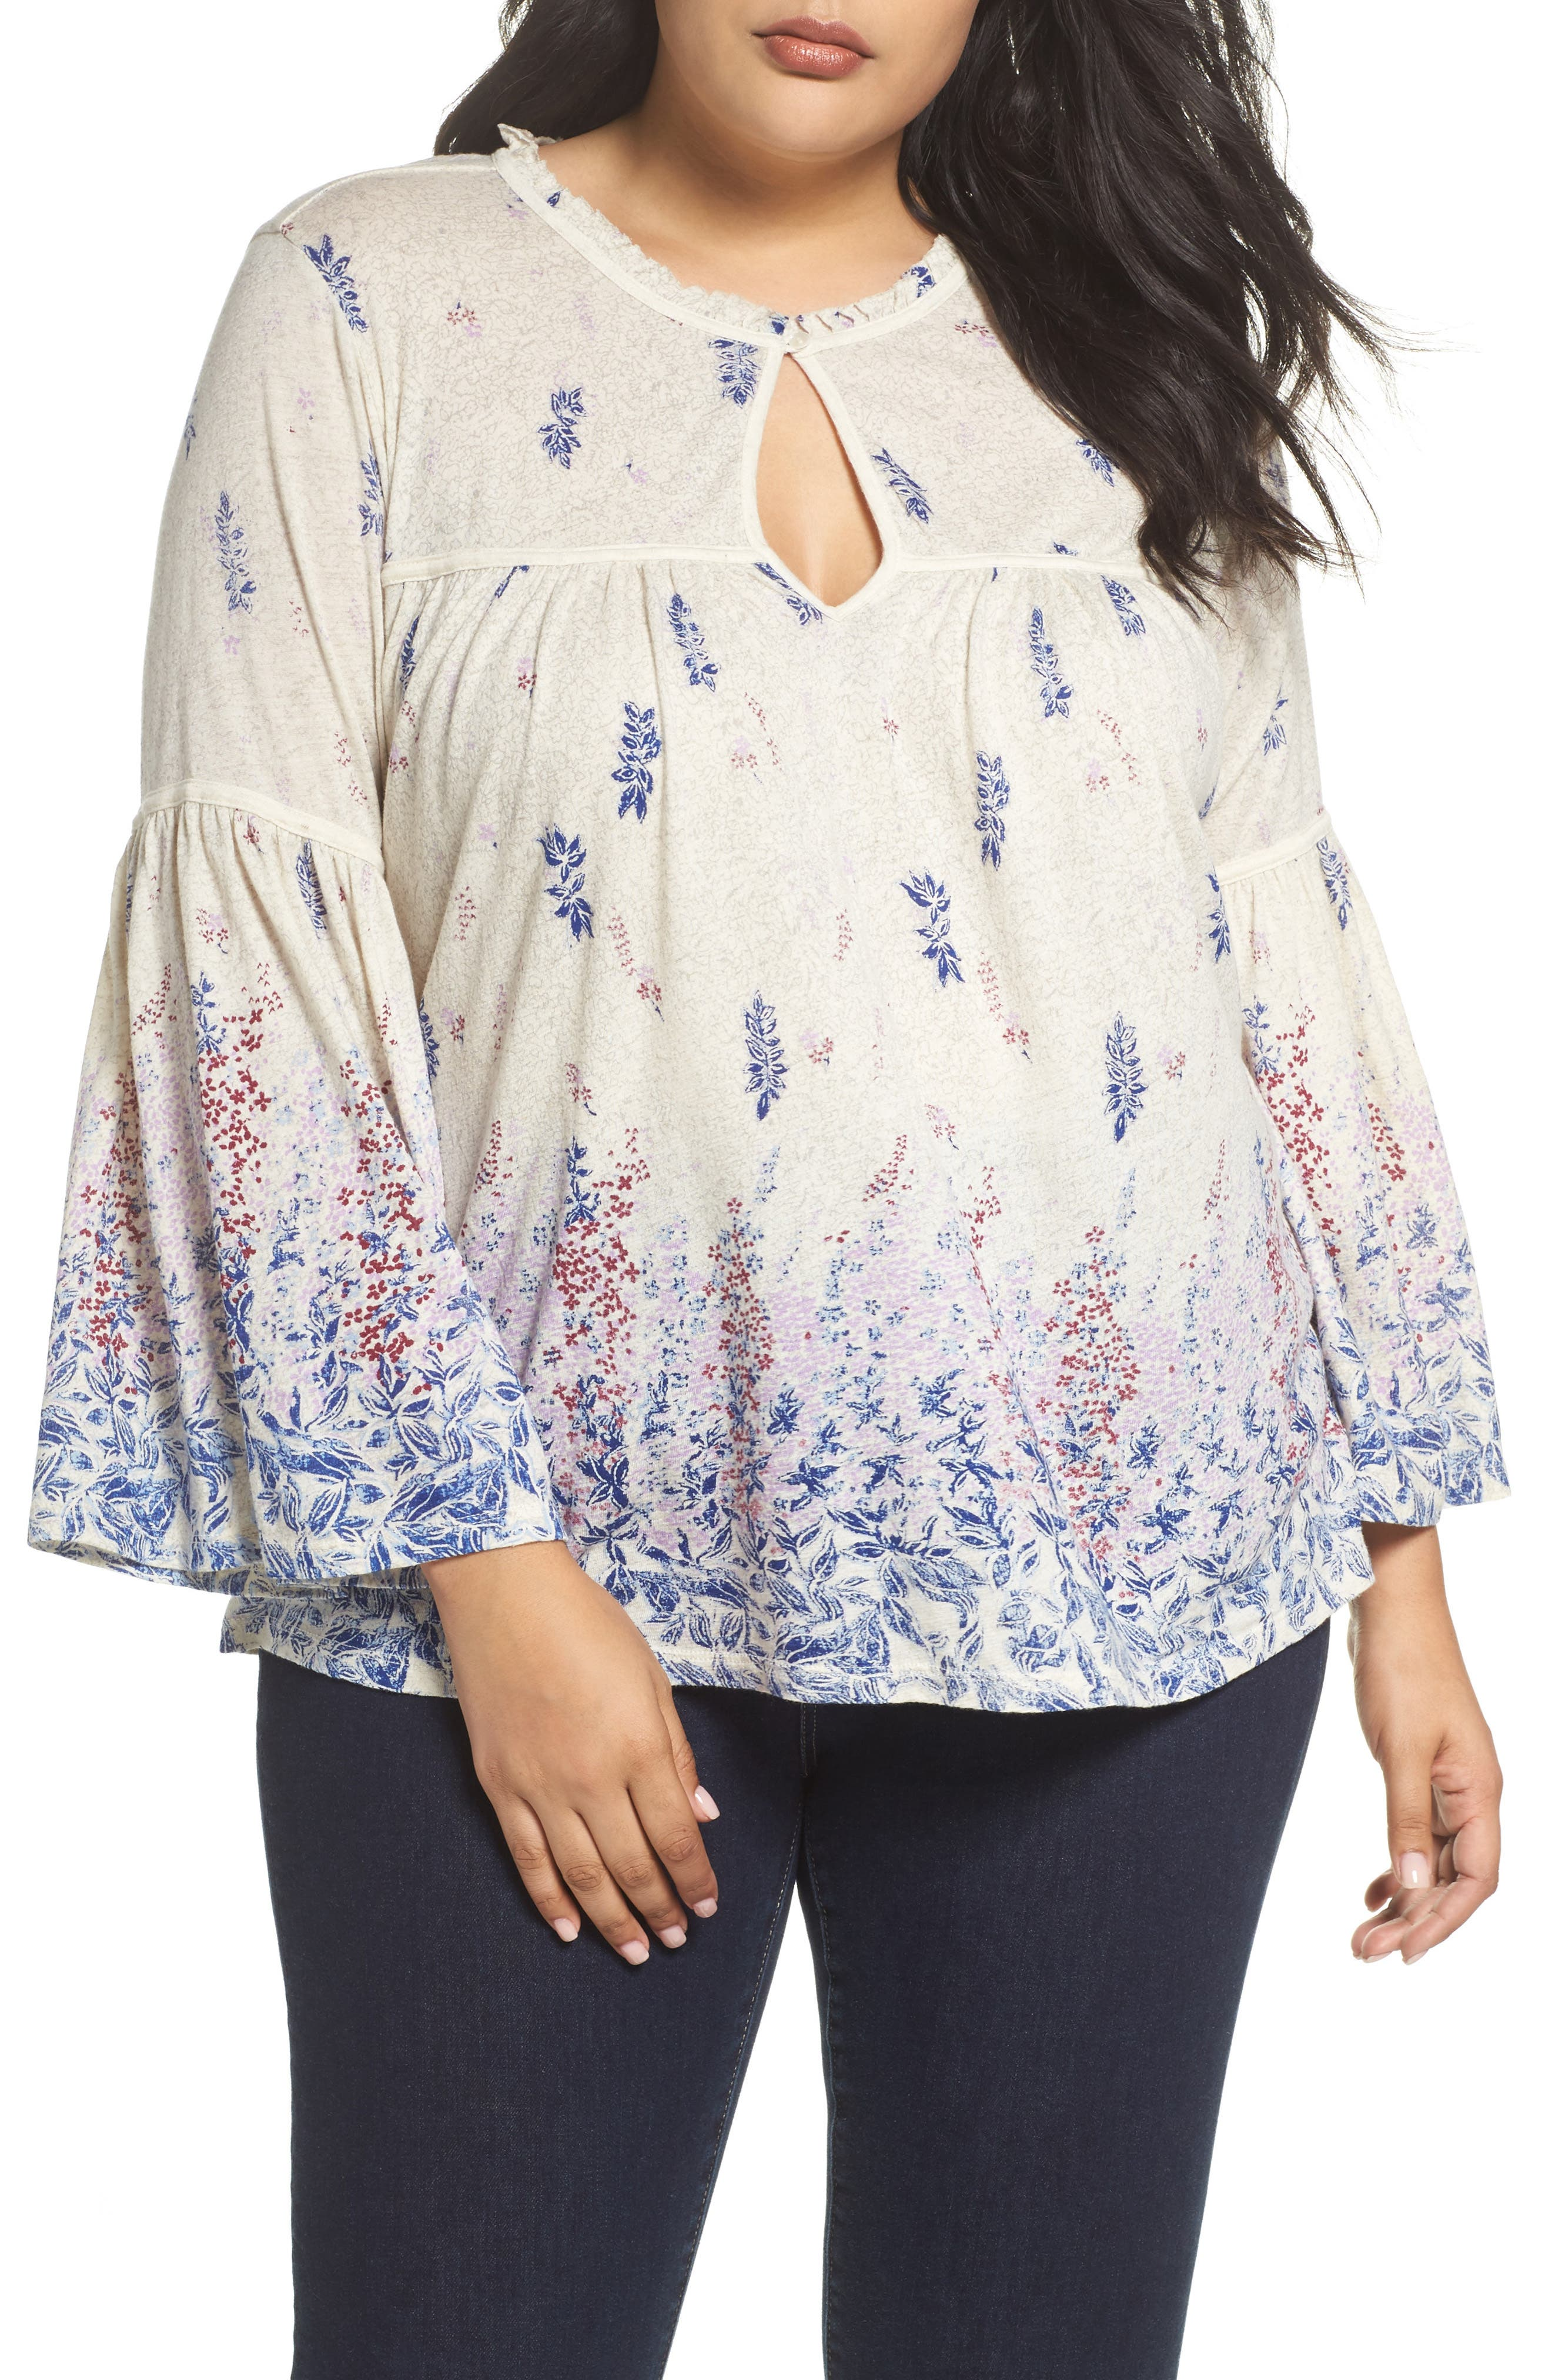 Alternate Image 1 Selected - Lucky Brand Border Print Peasant Blouse (Plus Size)